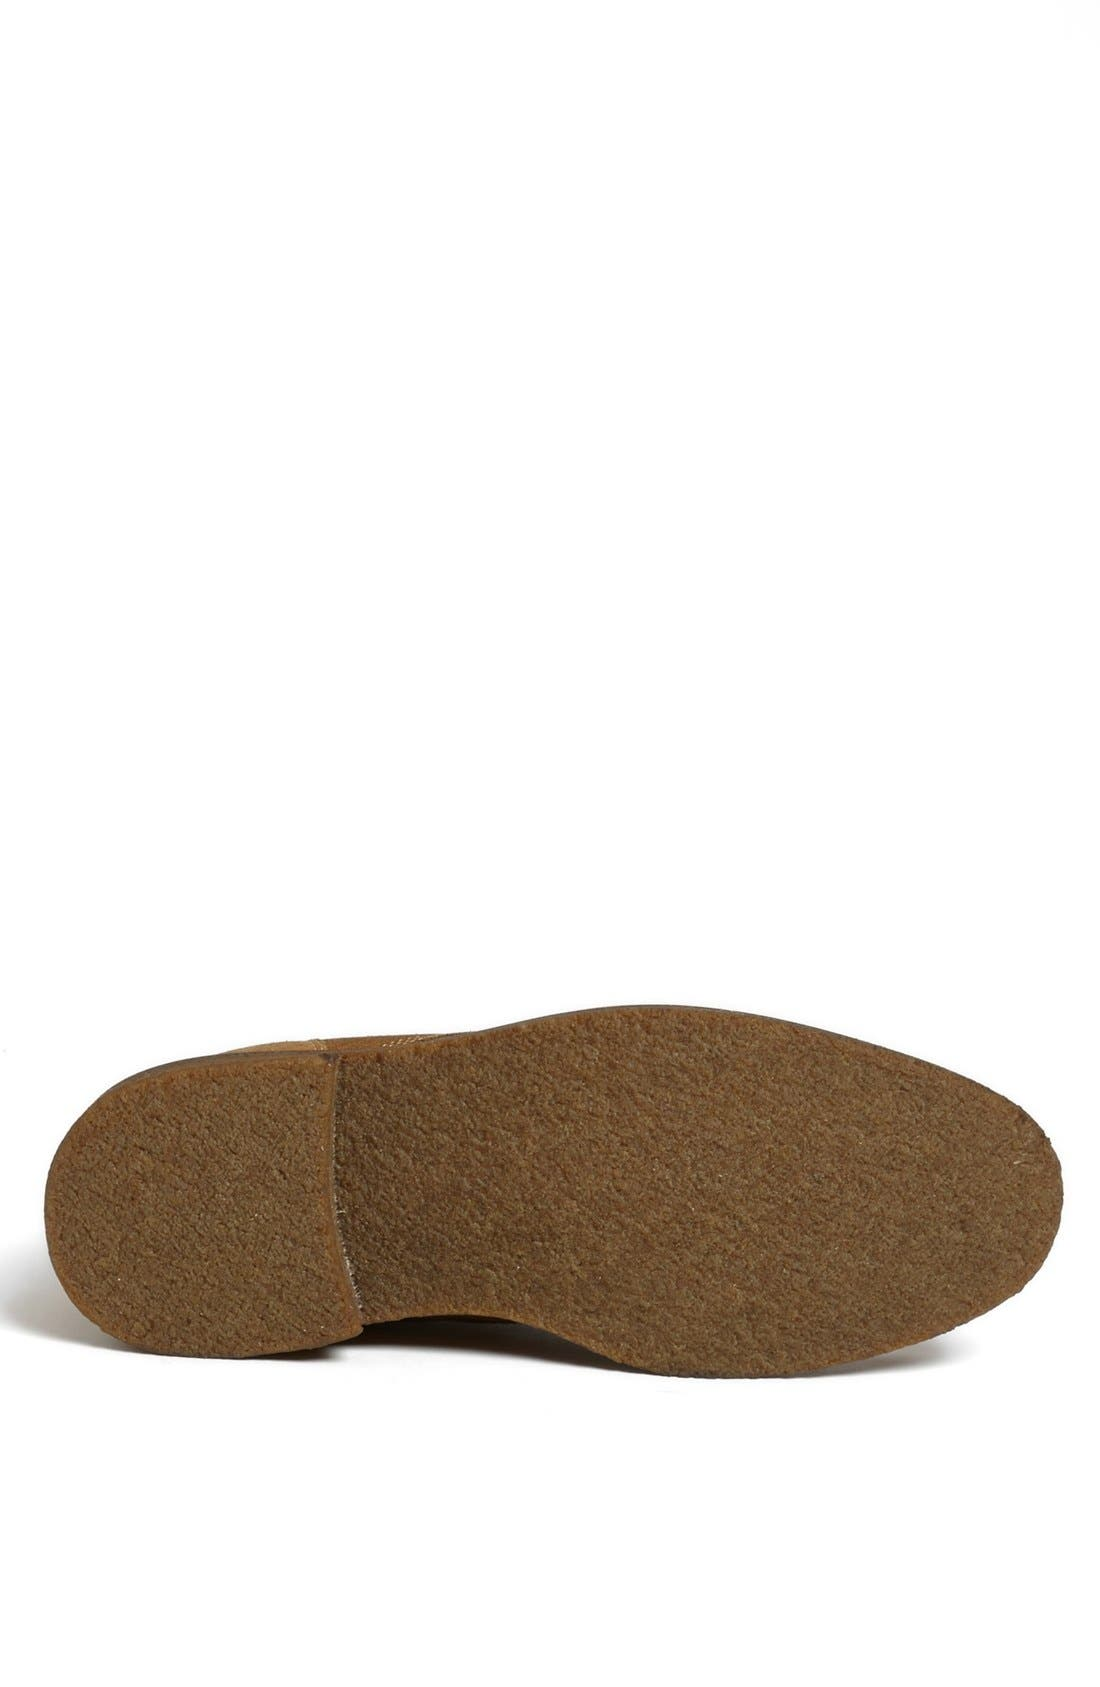 'Copeland' Suede Chukka Boot,                             Alternate thumbnail 16, color,